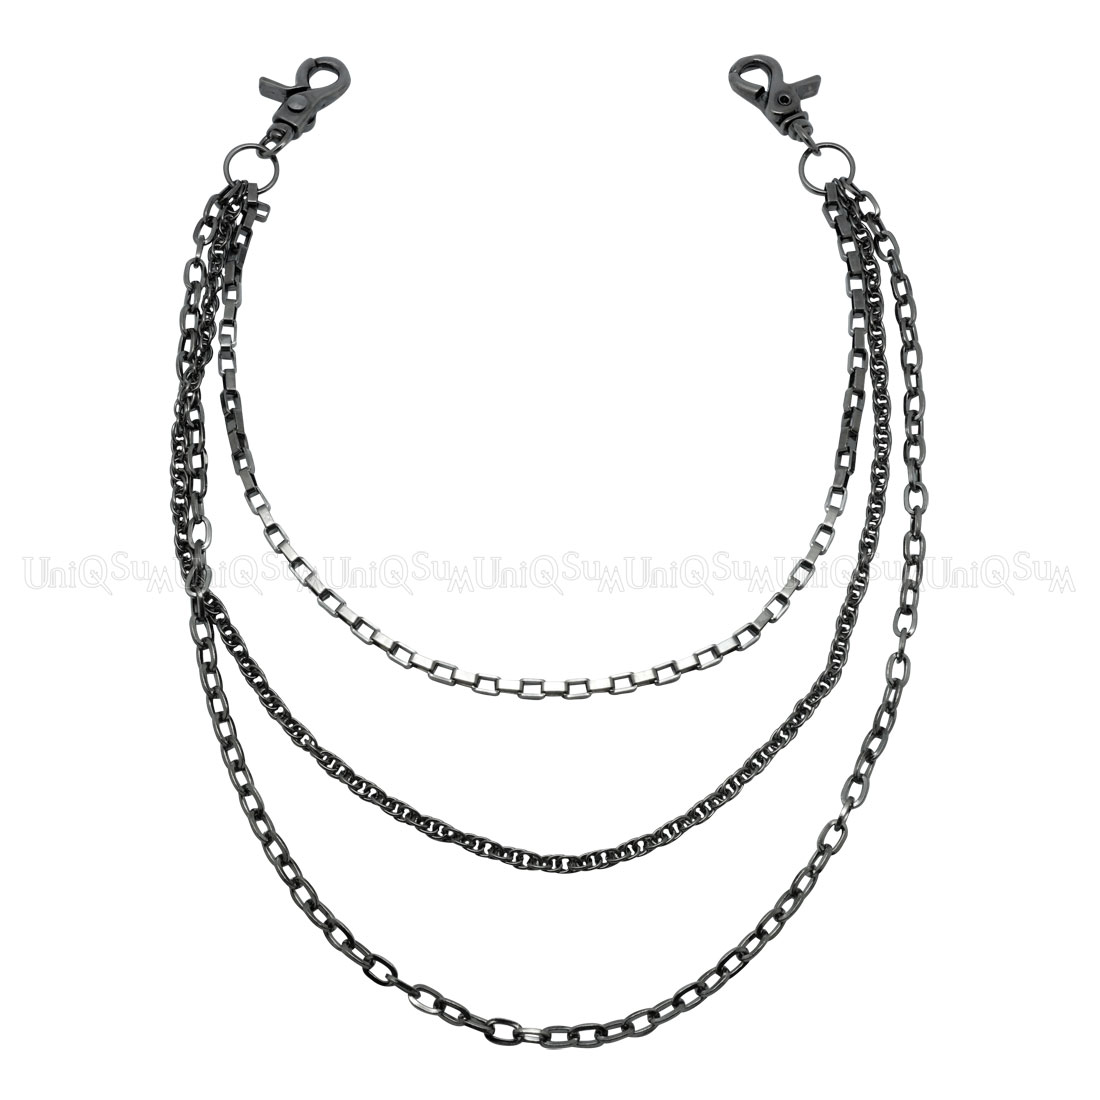 trac chainstrygg lightweight studded fast mpn chains trygg